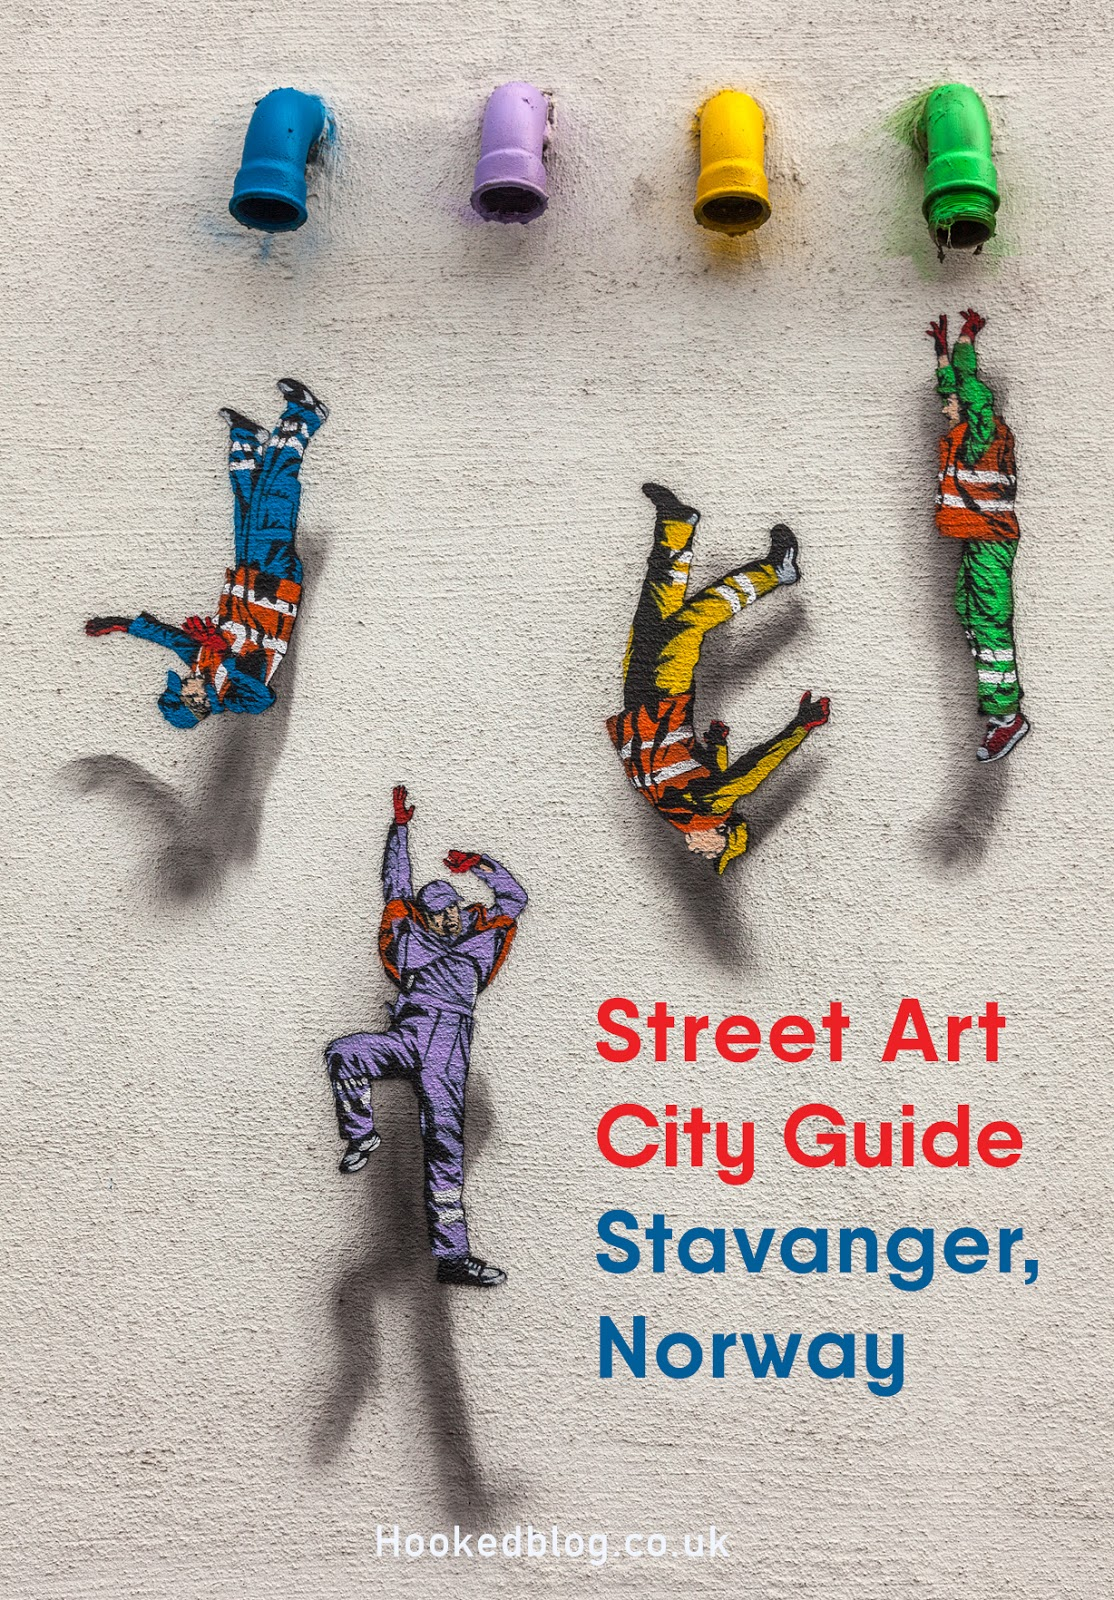 Street Art City Guide to Stavanger, Norway*